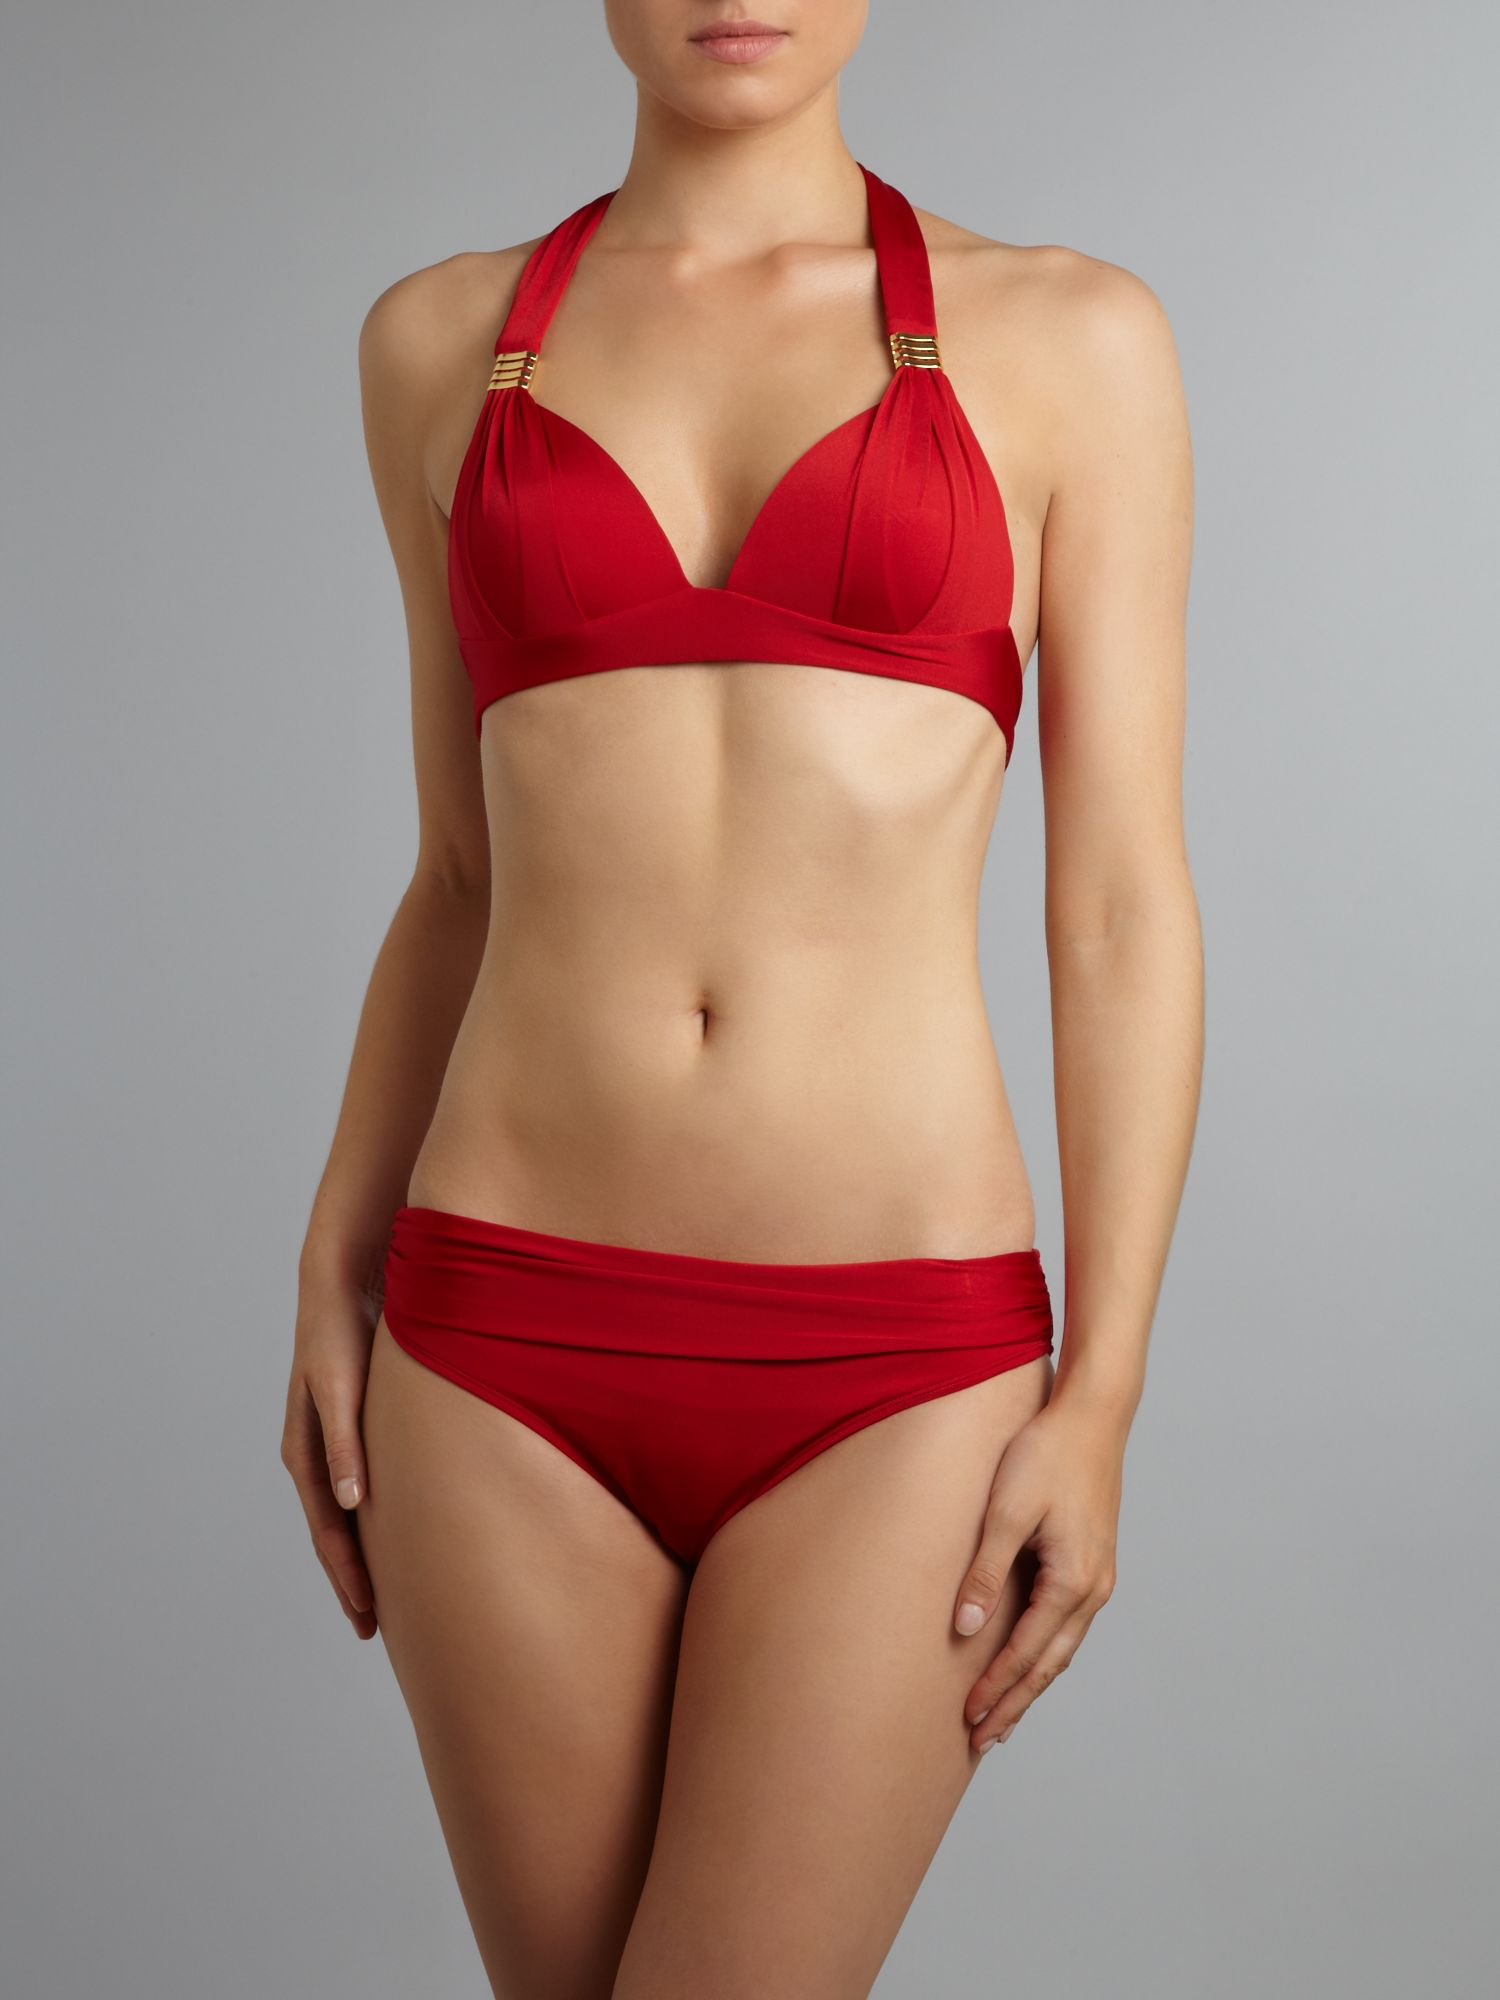 Goddess Range in Red